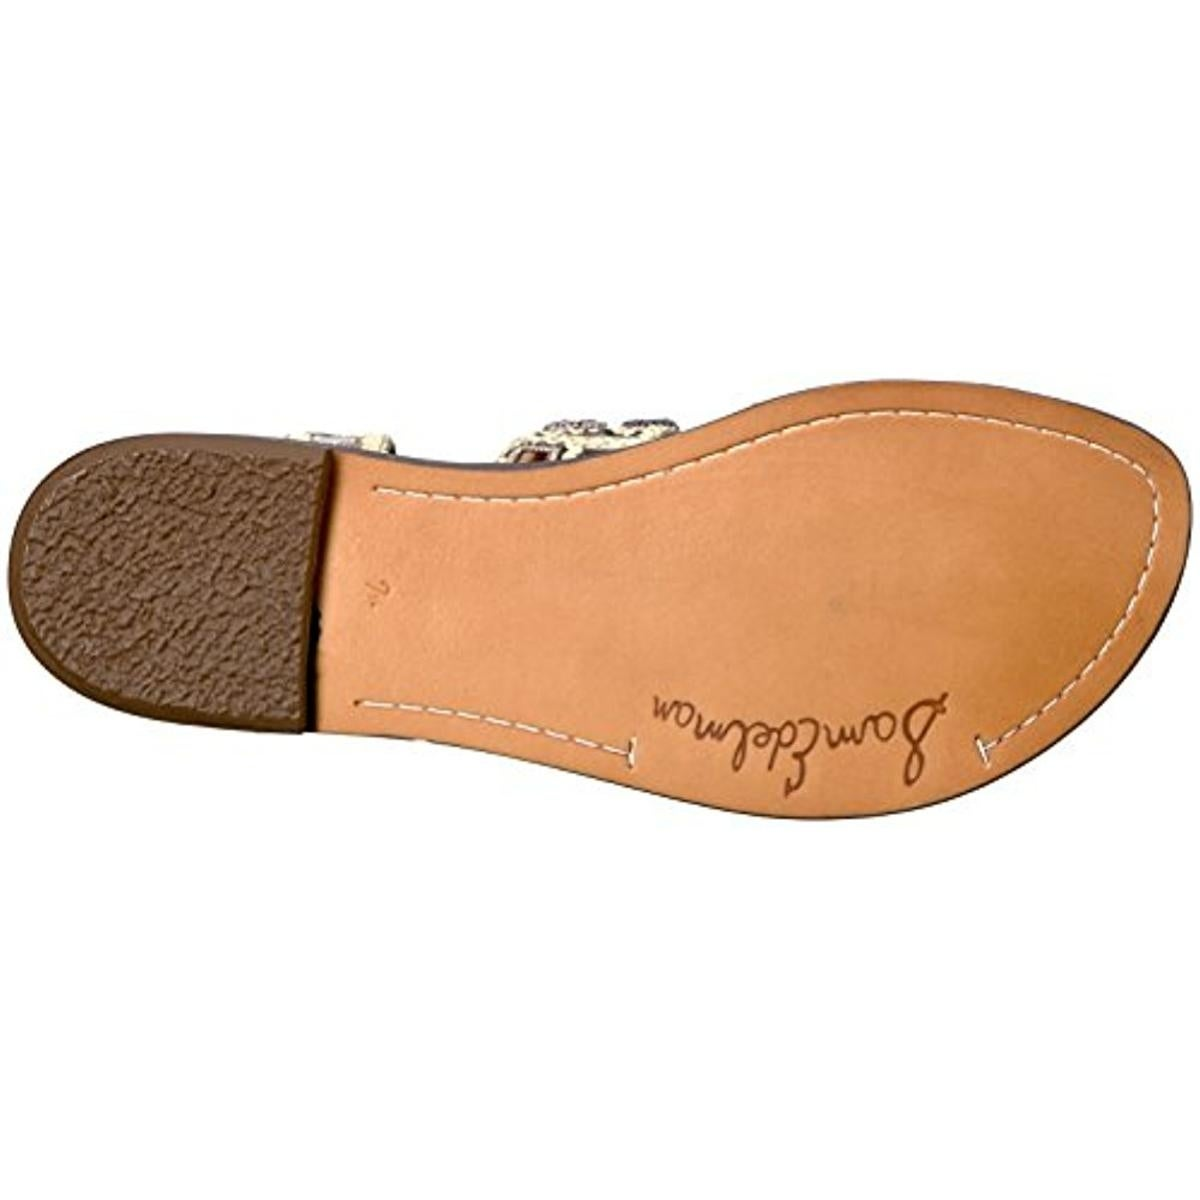 5070b746b336e9 Shop Sam Edelman Womens Gretchen Flat Sandals Canvas Leather - Free  Shipping On Orders Over  45 - Overstock.com - 21027054